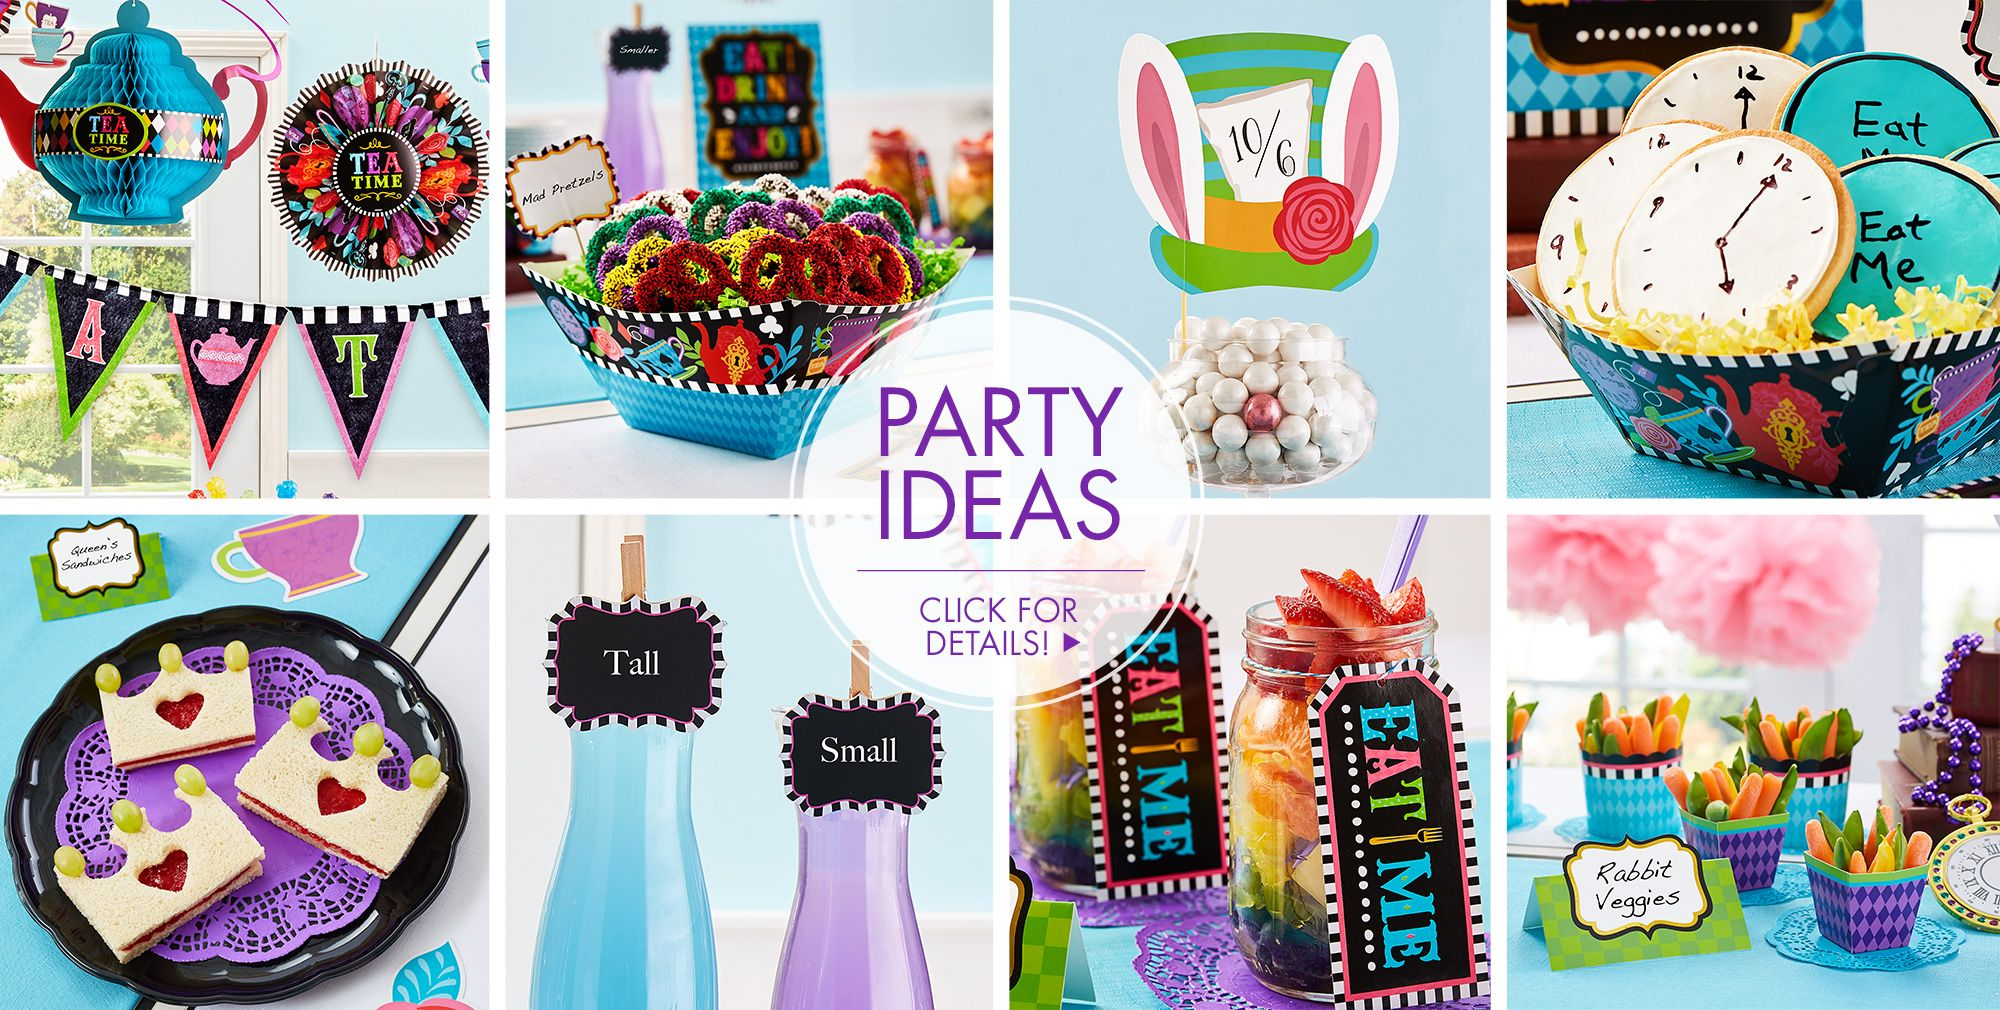 Mad hatter tea party decoration ideas -  Mad Hatter Theme Party